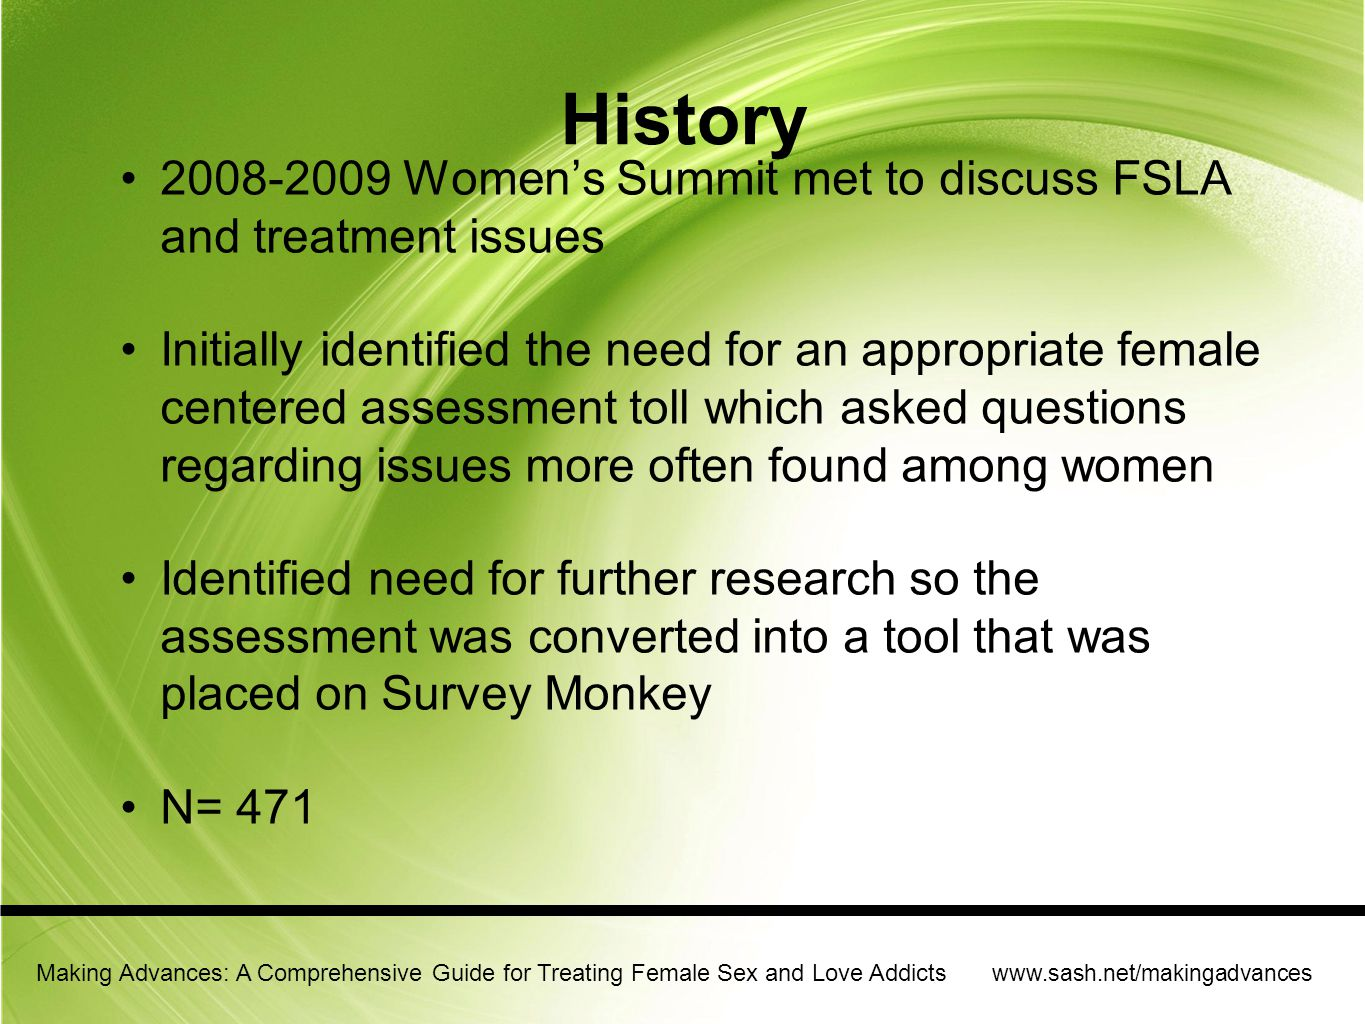 Making Advances: A Comprehensive Guide for Treating Female Sex and Love Addicts www.sash.net/makingadvances Women are different then men Brains are different Socialization is different History is different Interpersonal interaction is different Addiction experience is different and treatment needs to reflect these differences Women do better when their therapist is sensitive to their attachment history, trauma and attachment needs The client must feel safe and secure and heard Resources are limited for women especially mothers and caretakers Traditional focus is often upon single issues and many programs do not want to look holistically at the patient